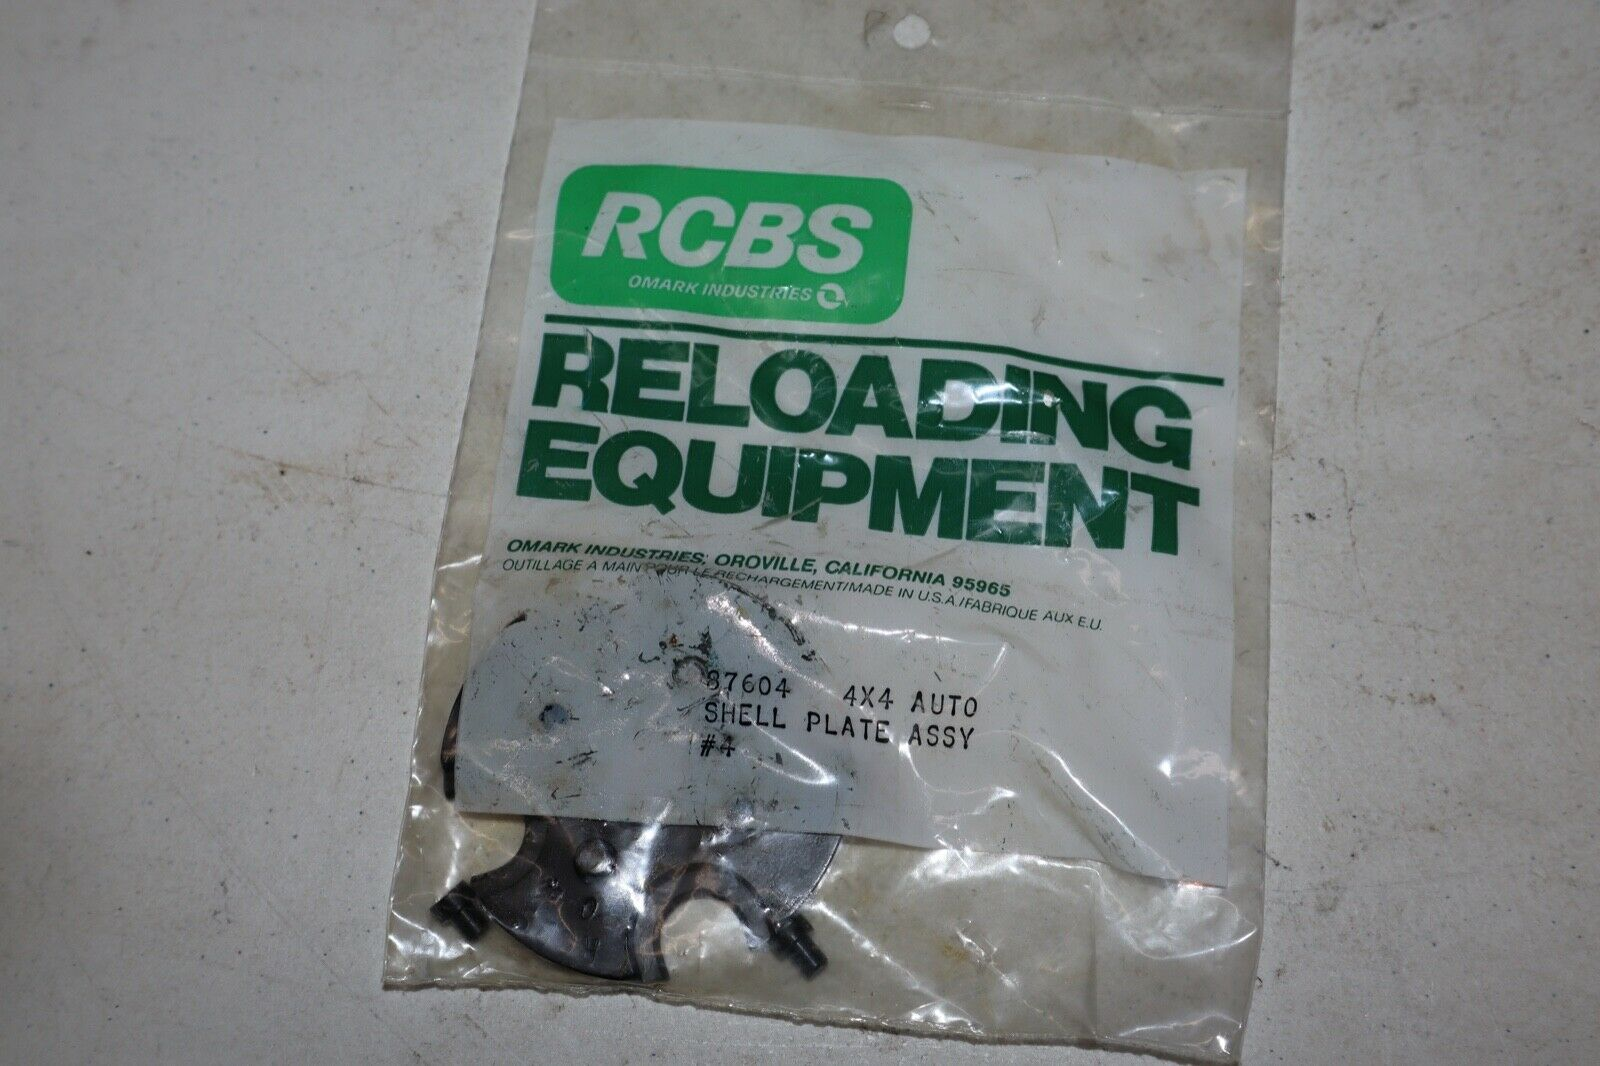 Rcbs 4x4 16 Shell Plate Assy W Buttons 9mm 30 Luger Base Sizes Reloading For Sale Online Ebay